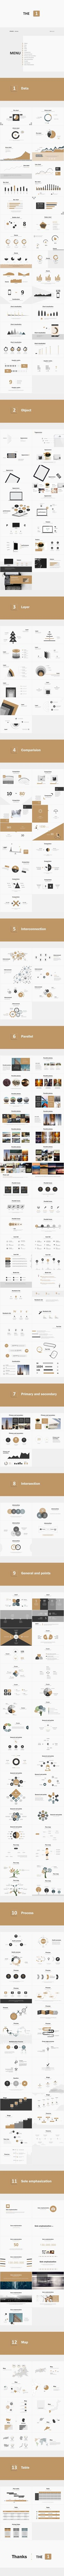 The Analysic Effective Business PowerPoint Template #slides #design Download: http://graphicriver.net/item/the-analysic-effective-business-templat_the-one/14312463?ref=ksioks